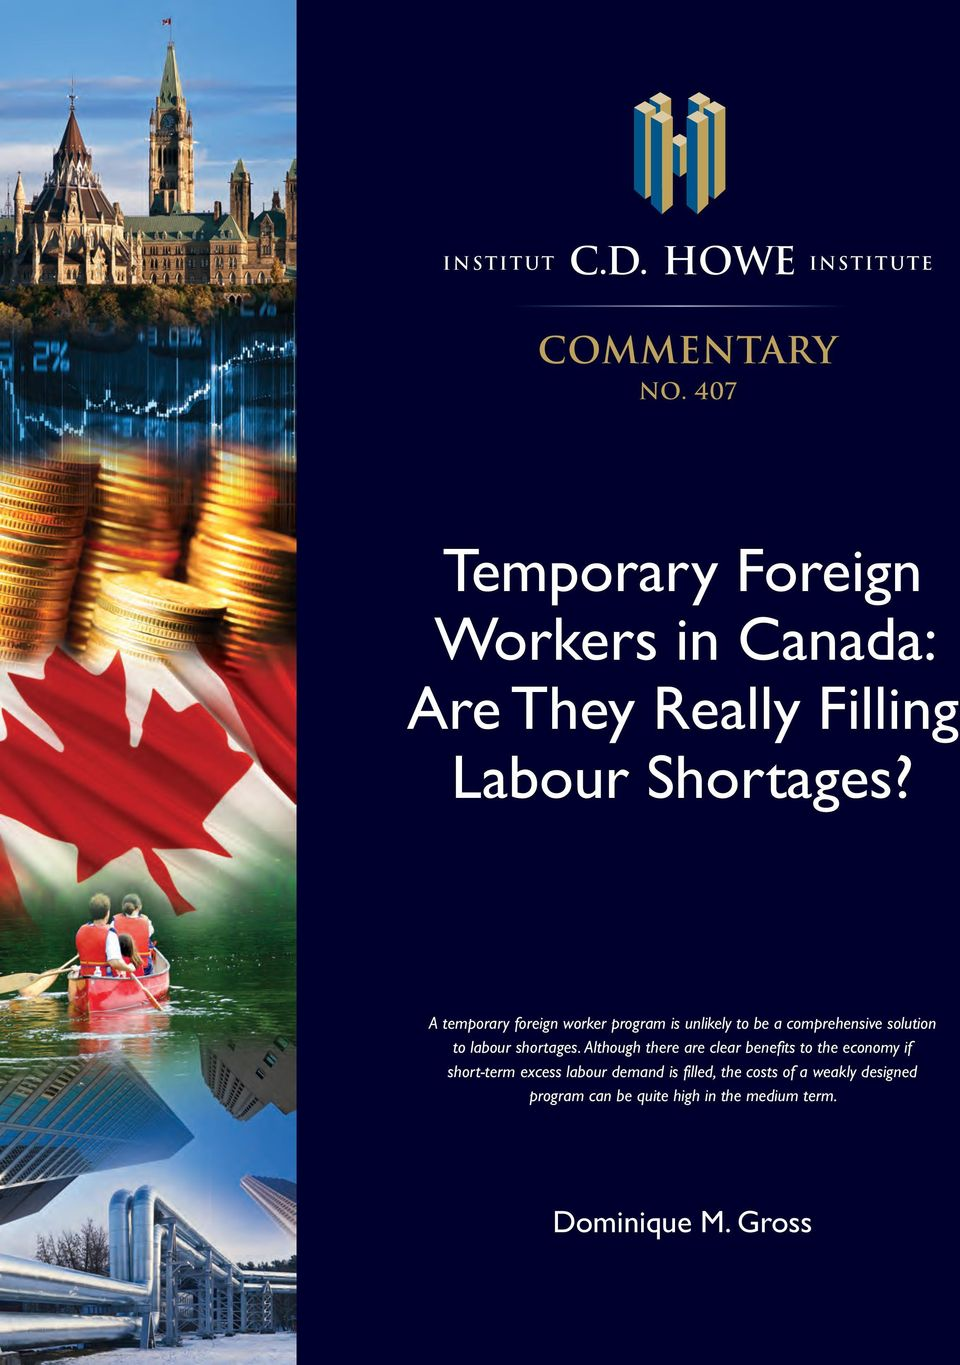 A temporary foreign worker program is unlikely to be a comprehensive solution to labour shortages.